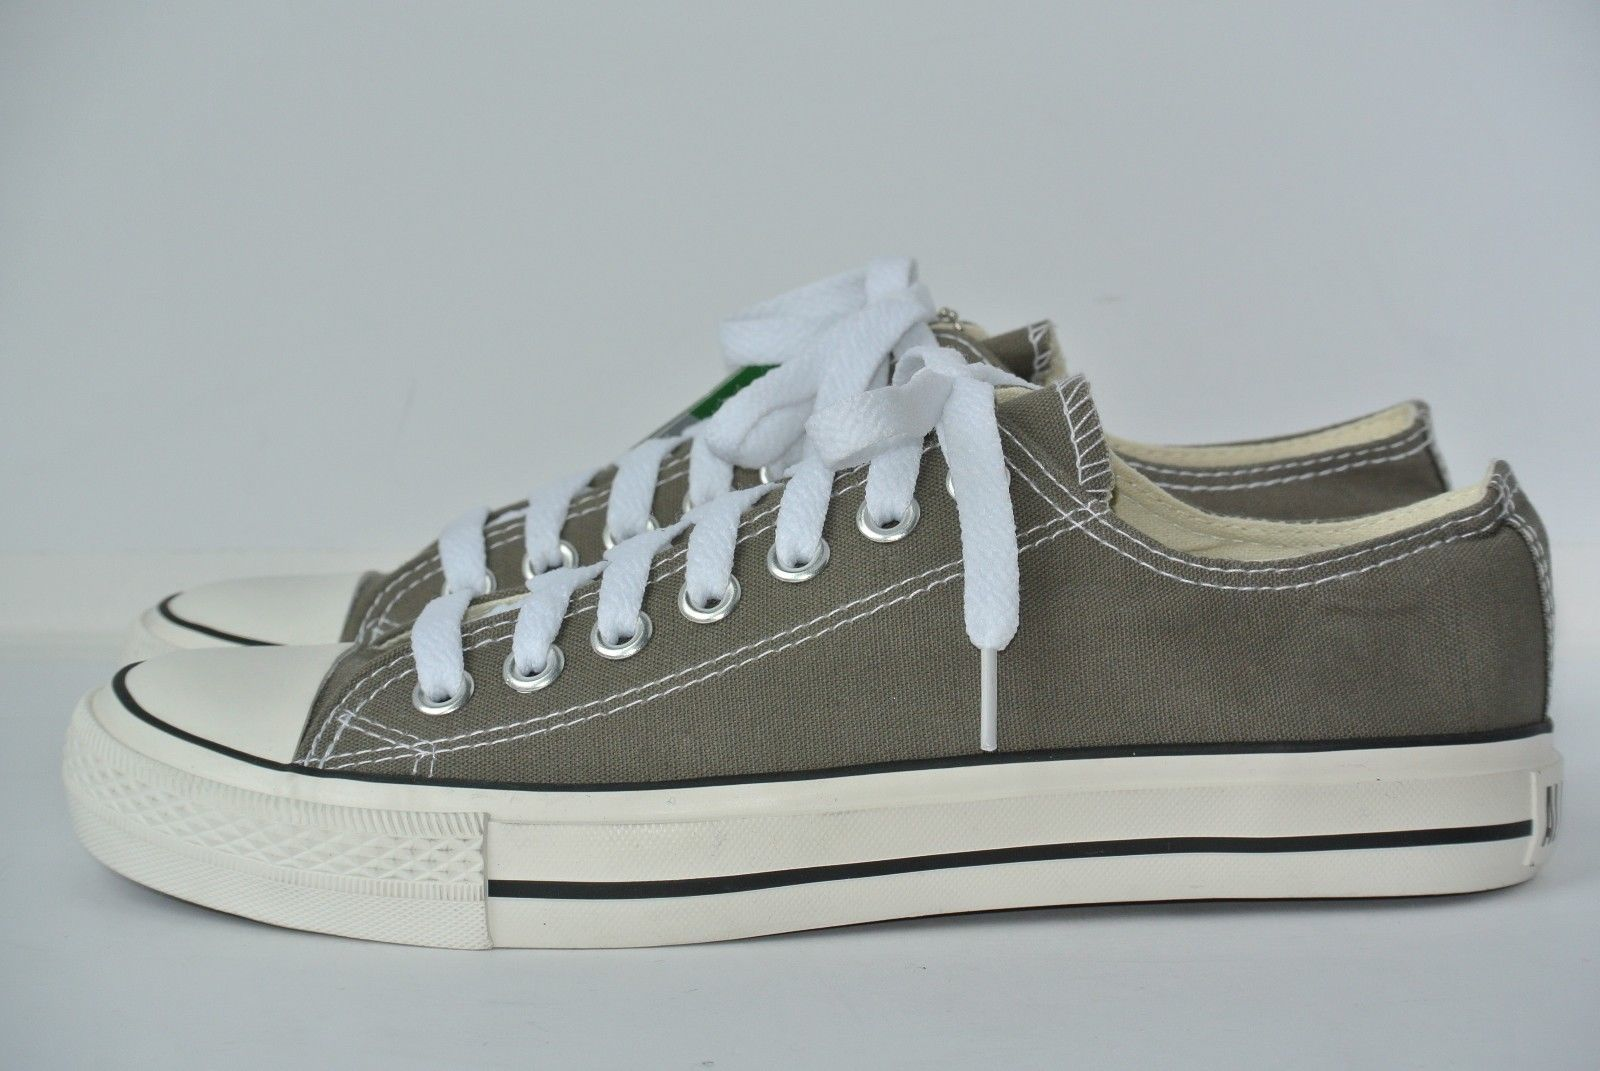 57. 57. Previous. NEW Converse All Star Chuck Taylor Low Top Gray Womens  8.5 Mens 7 Canvas Shoes a5a56dbba